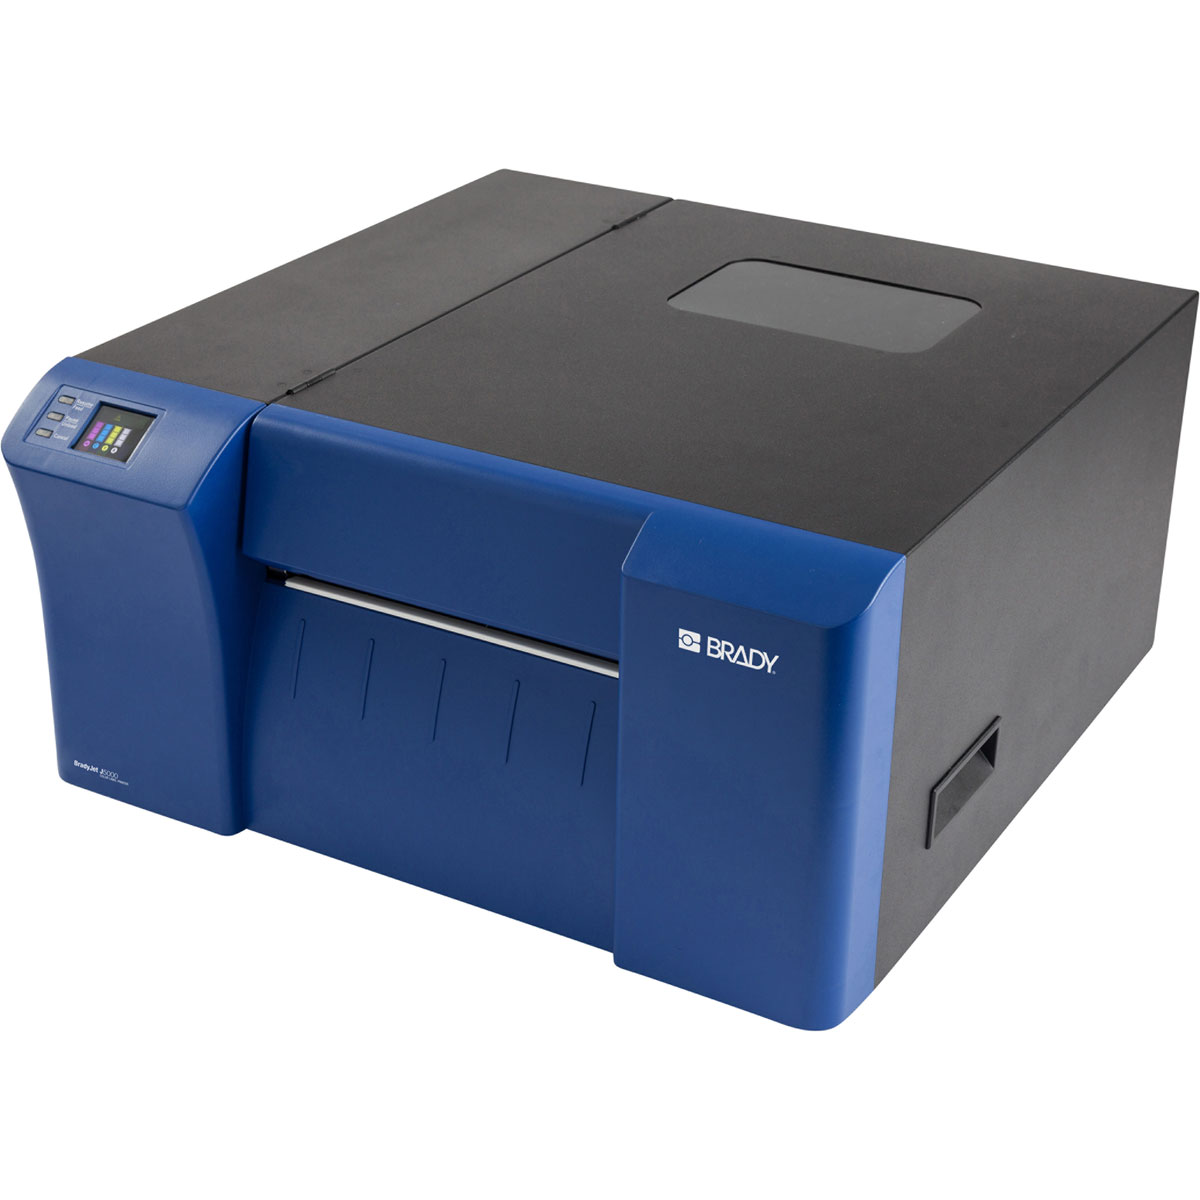 Color printer label - Bradyjet J5000 Color Label Printer